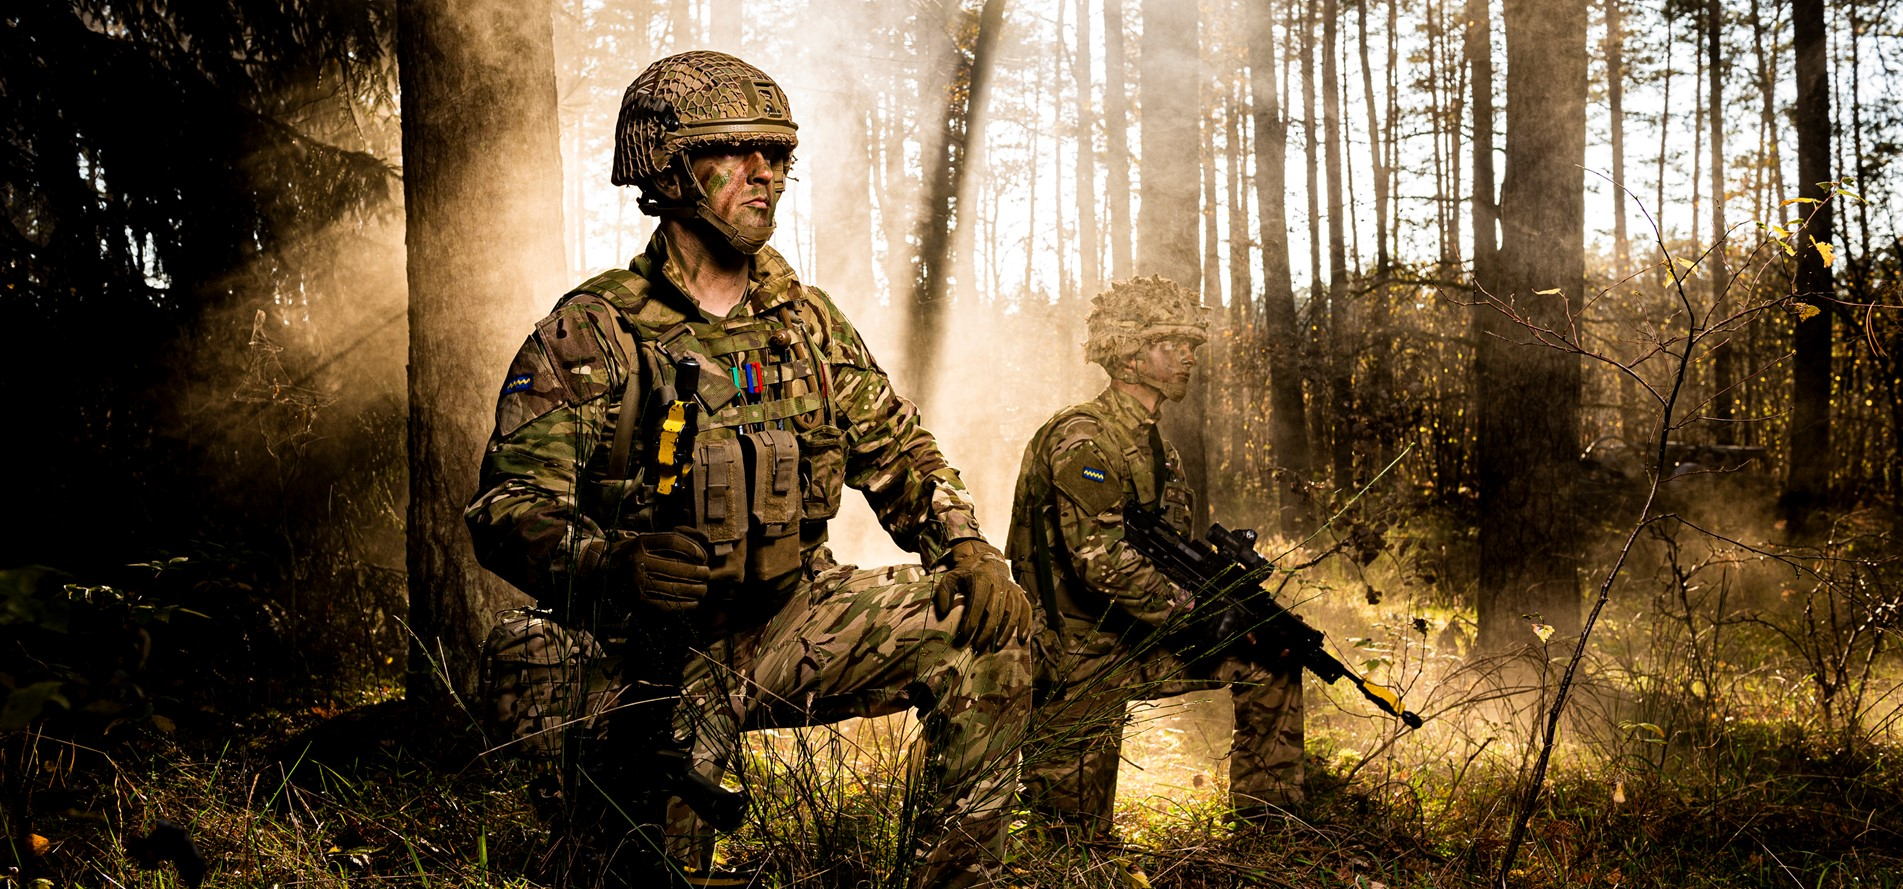 Pro Soldiering & Best Overall Image-Winner-Cpl Nick Johns-Take a Knee.jpg